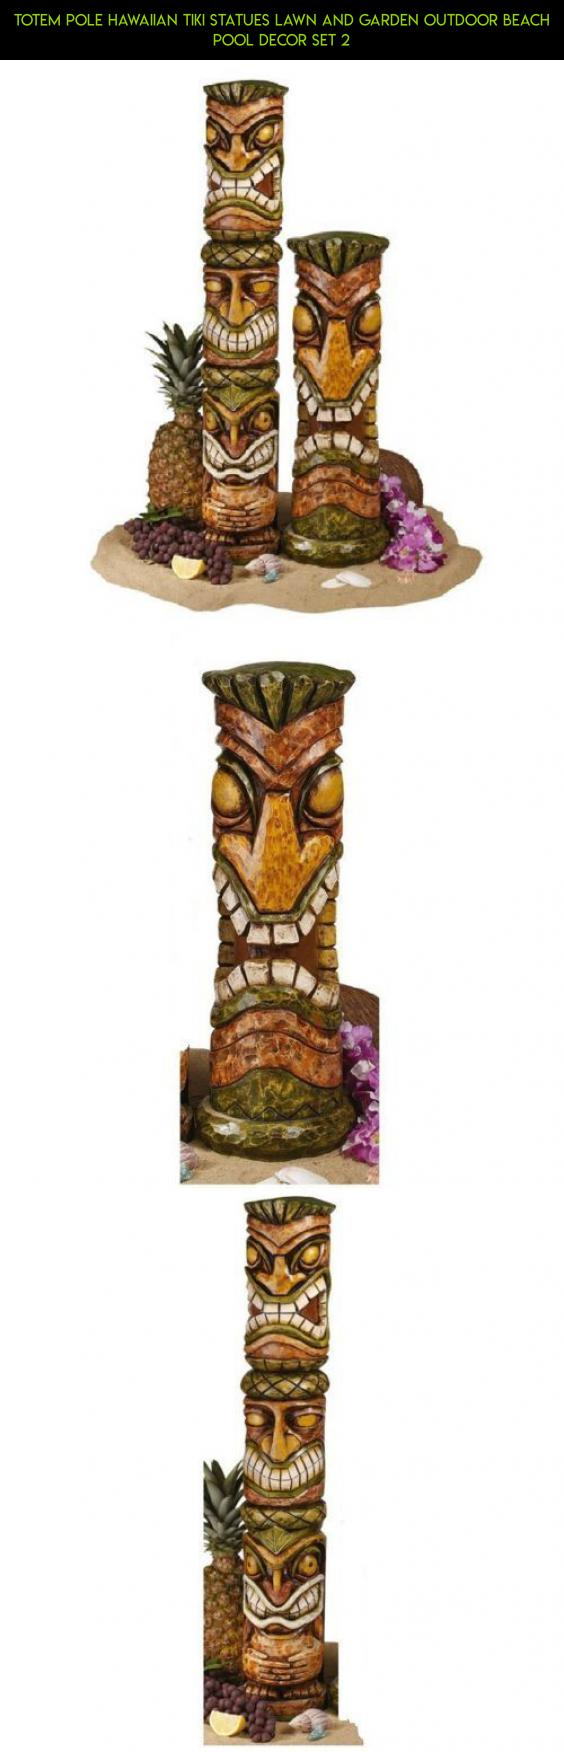 Totem Pole Hawaiian Tiki Statues Lawn And Garden Outdoor Beach Pool Decor Set 2 Ping